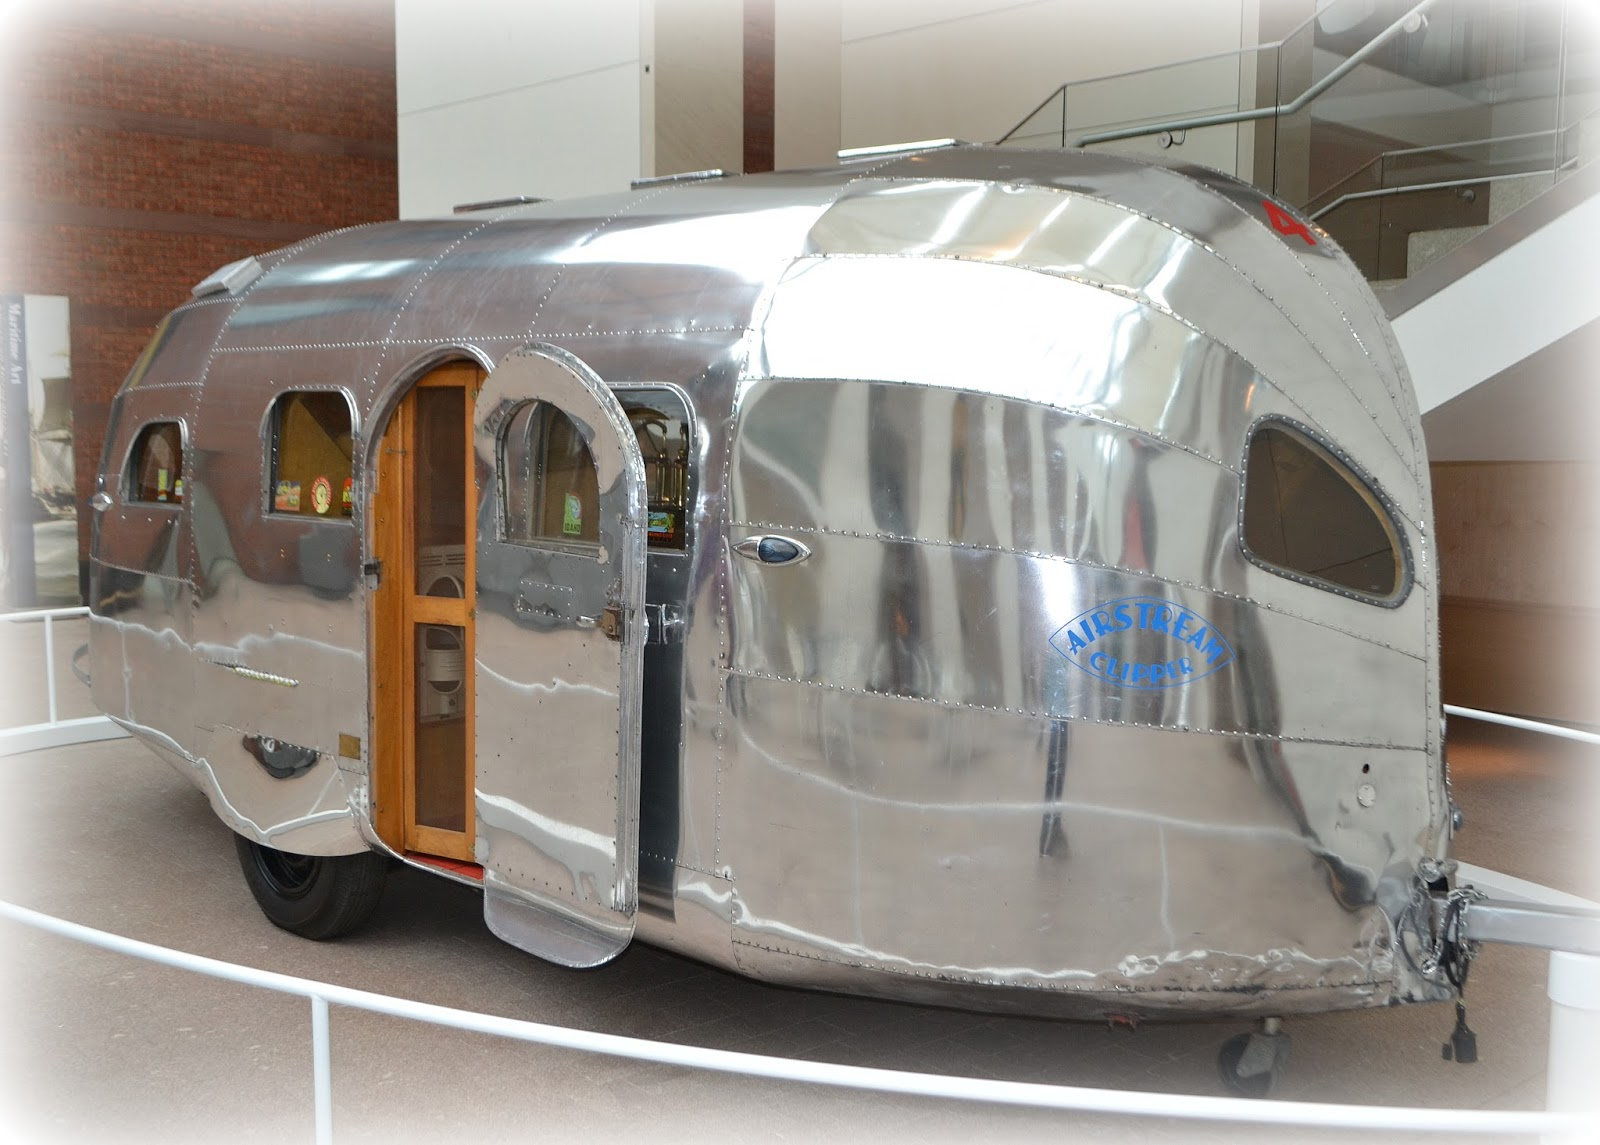 airstream, camper, travel, peabody essex, museum, salem, massachusetts